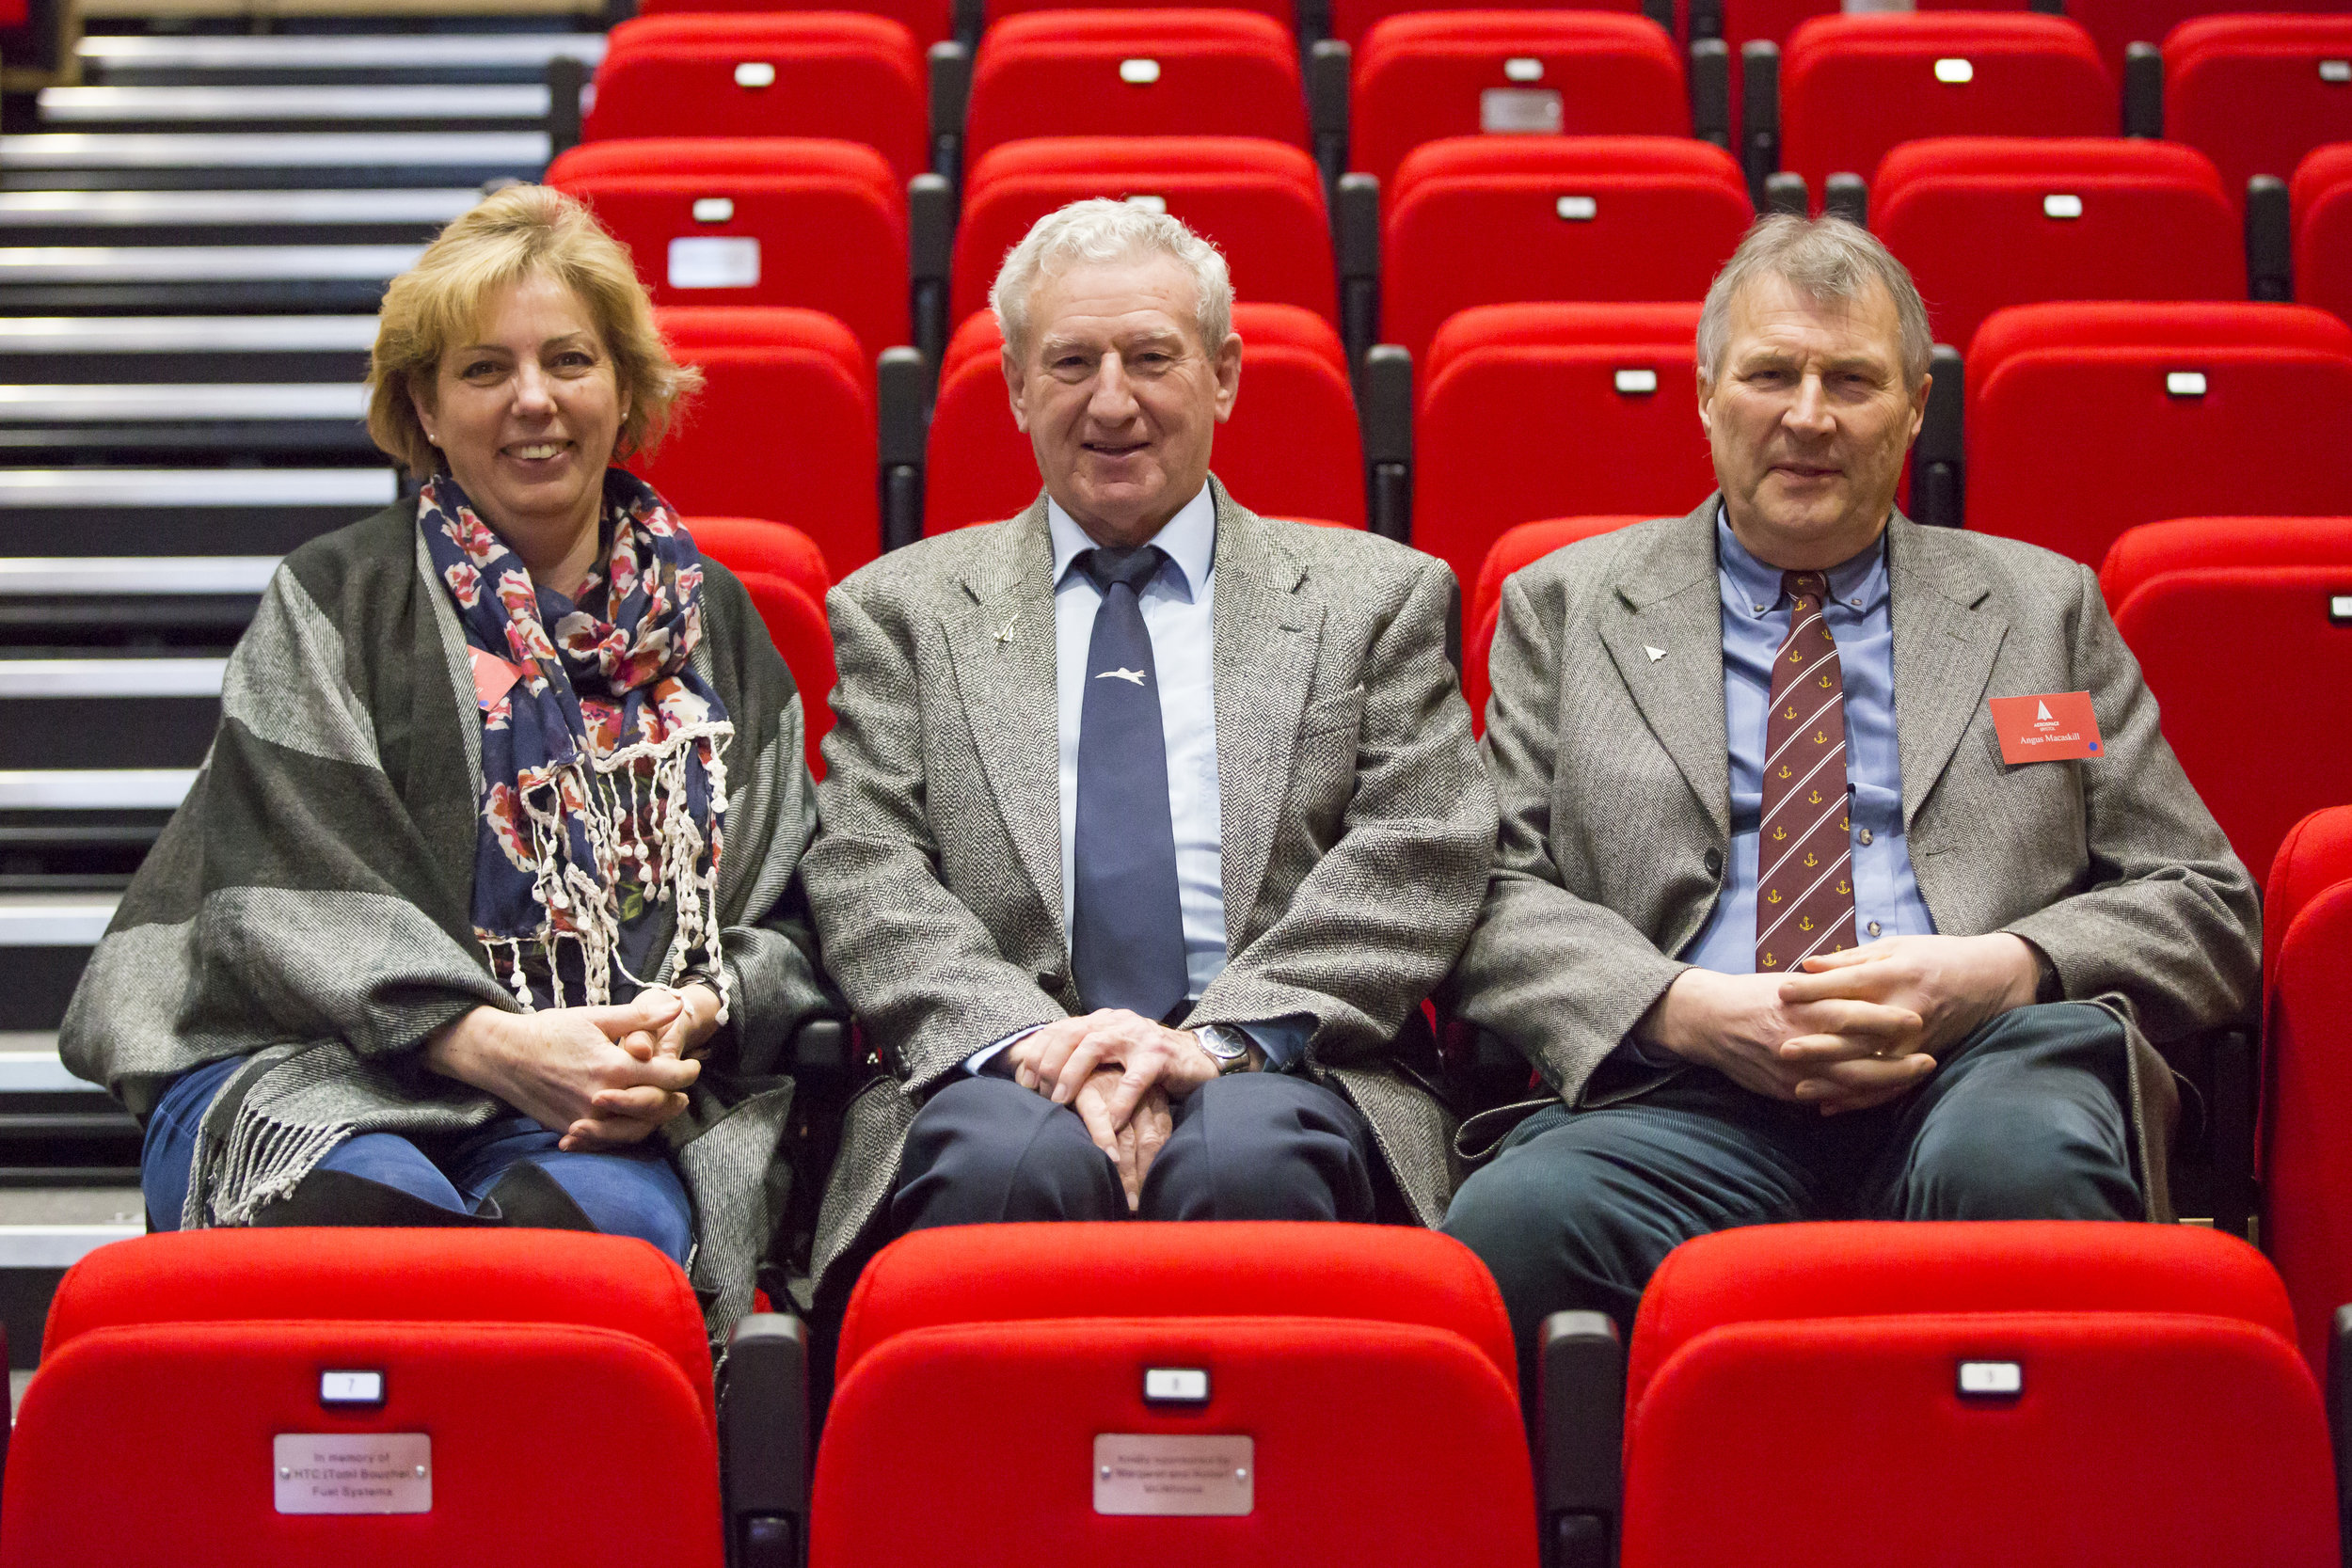 Lecture Theatre Seat Sponsors with Concorde Captain Gwyn Williams at a special supporters' event